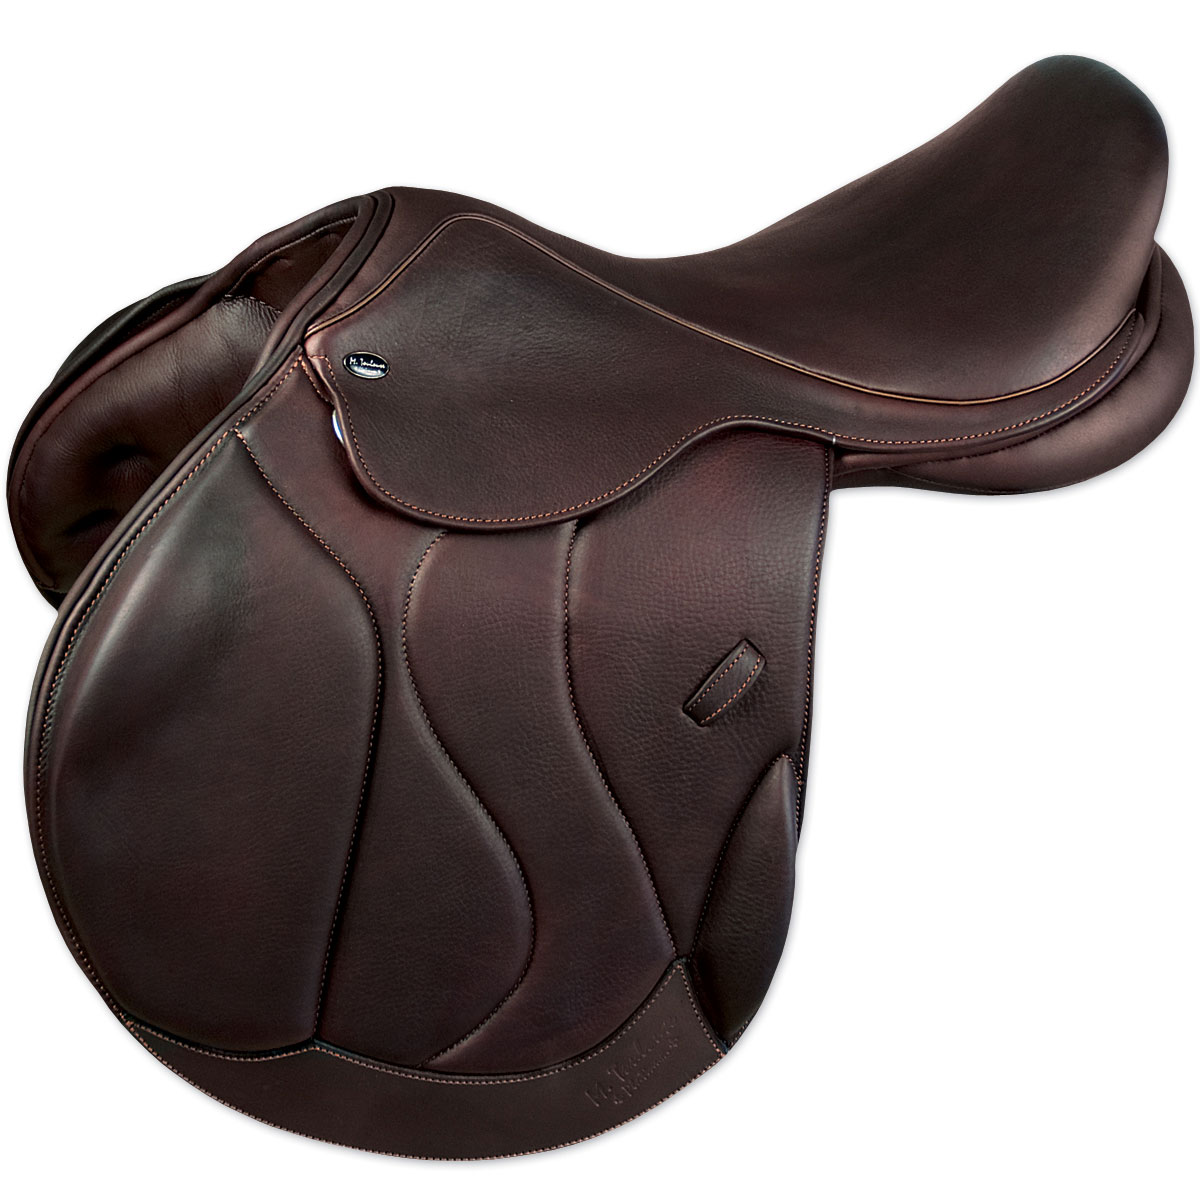 M. Toulouse Marielle +4 Monoflap Eventing Saddle with Genesis System